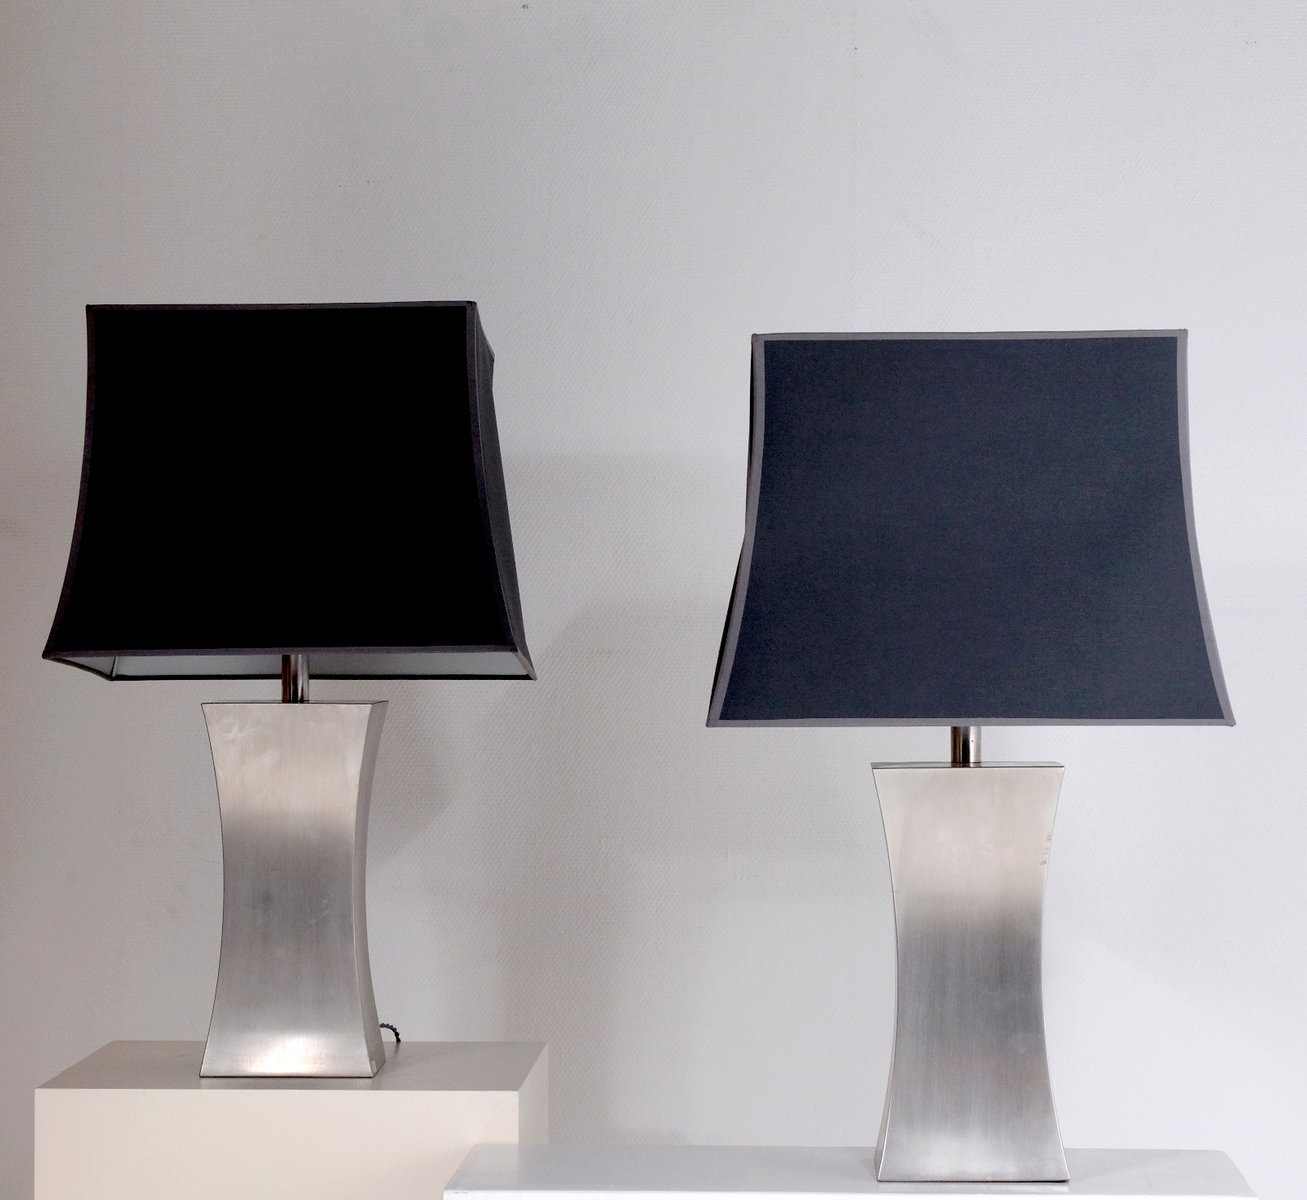 French Stainless Steel Table Lamps With Silk Shades By Francoise See, 1970s